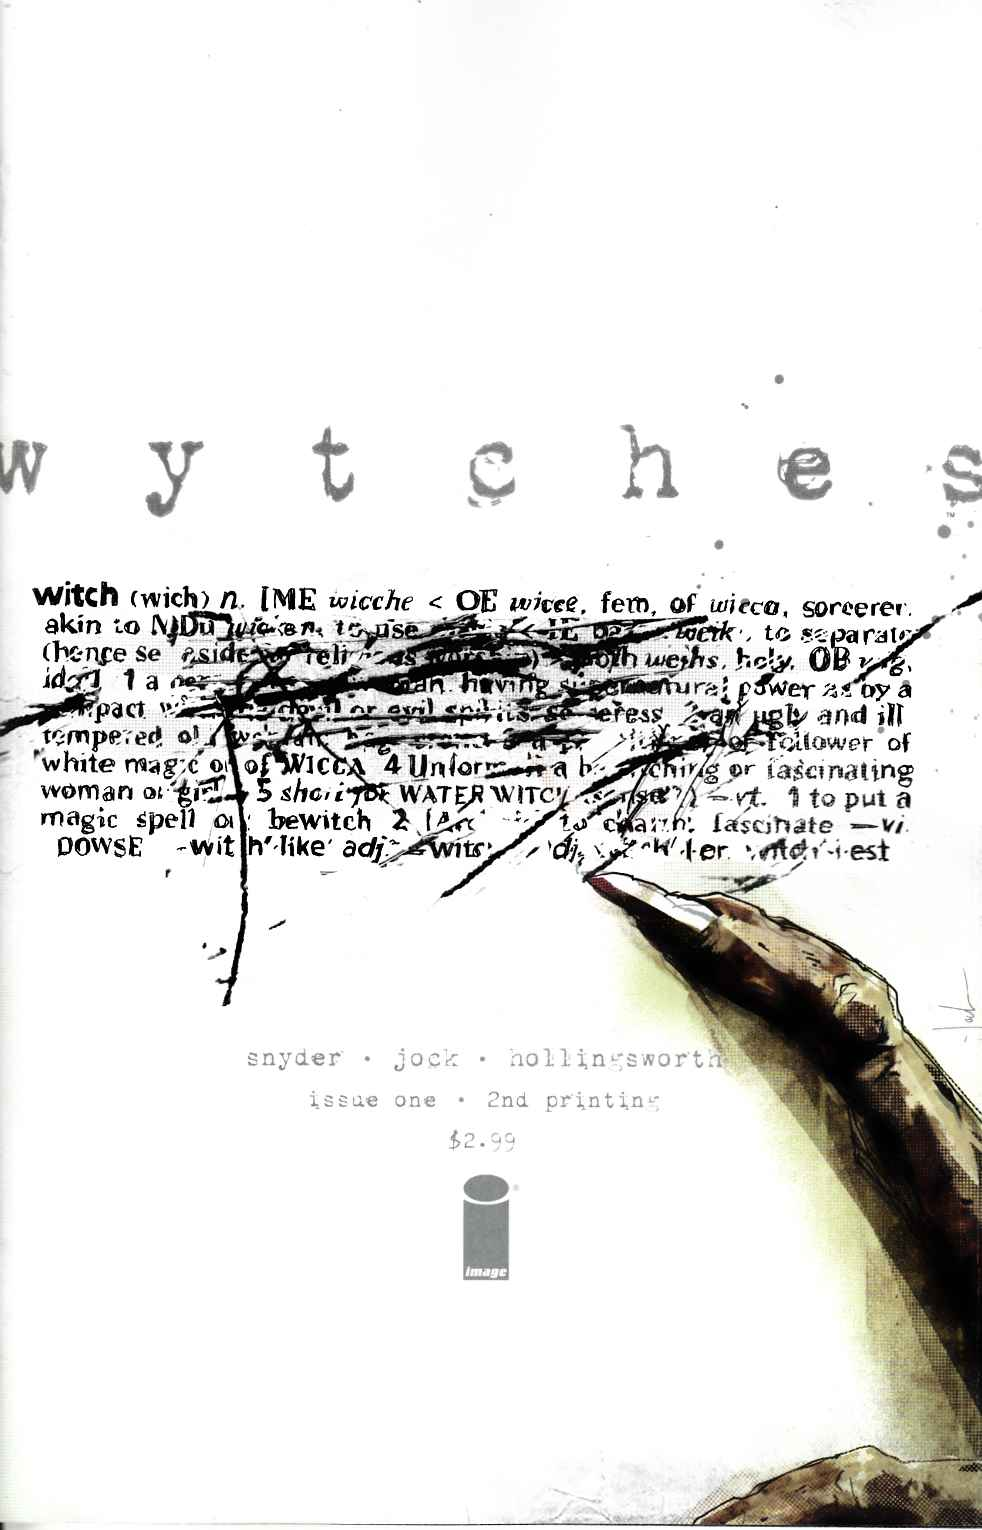 Wytches Issue 1 Second printing by Scott Snyder and Jock